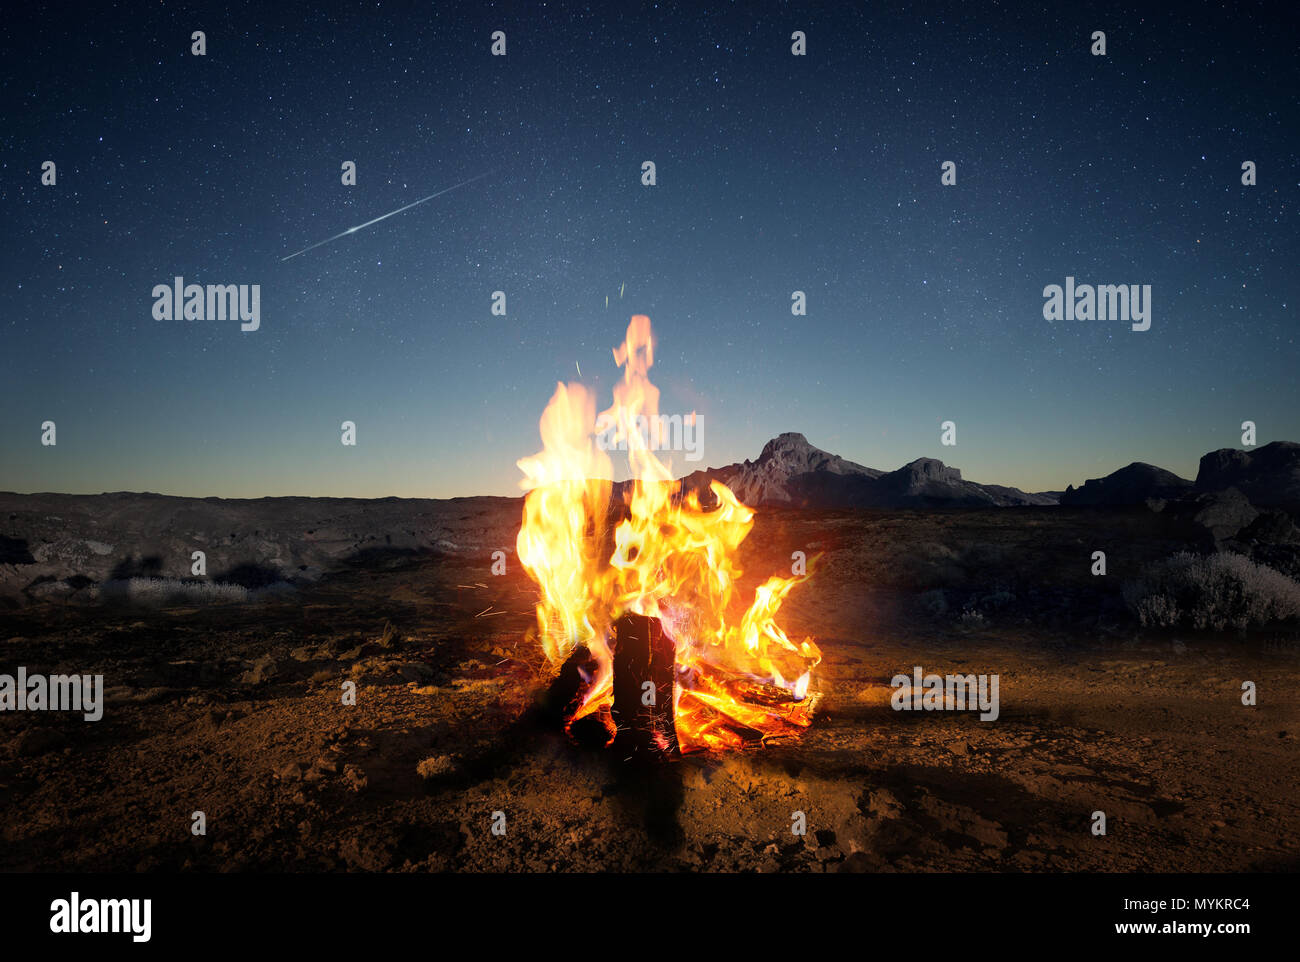 Exploring the wilderness in summer. A glowing camp fire at dusk providing comfort and light to appreciate nature, good times and the night sky full of - Stock Image